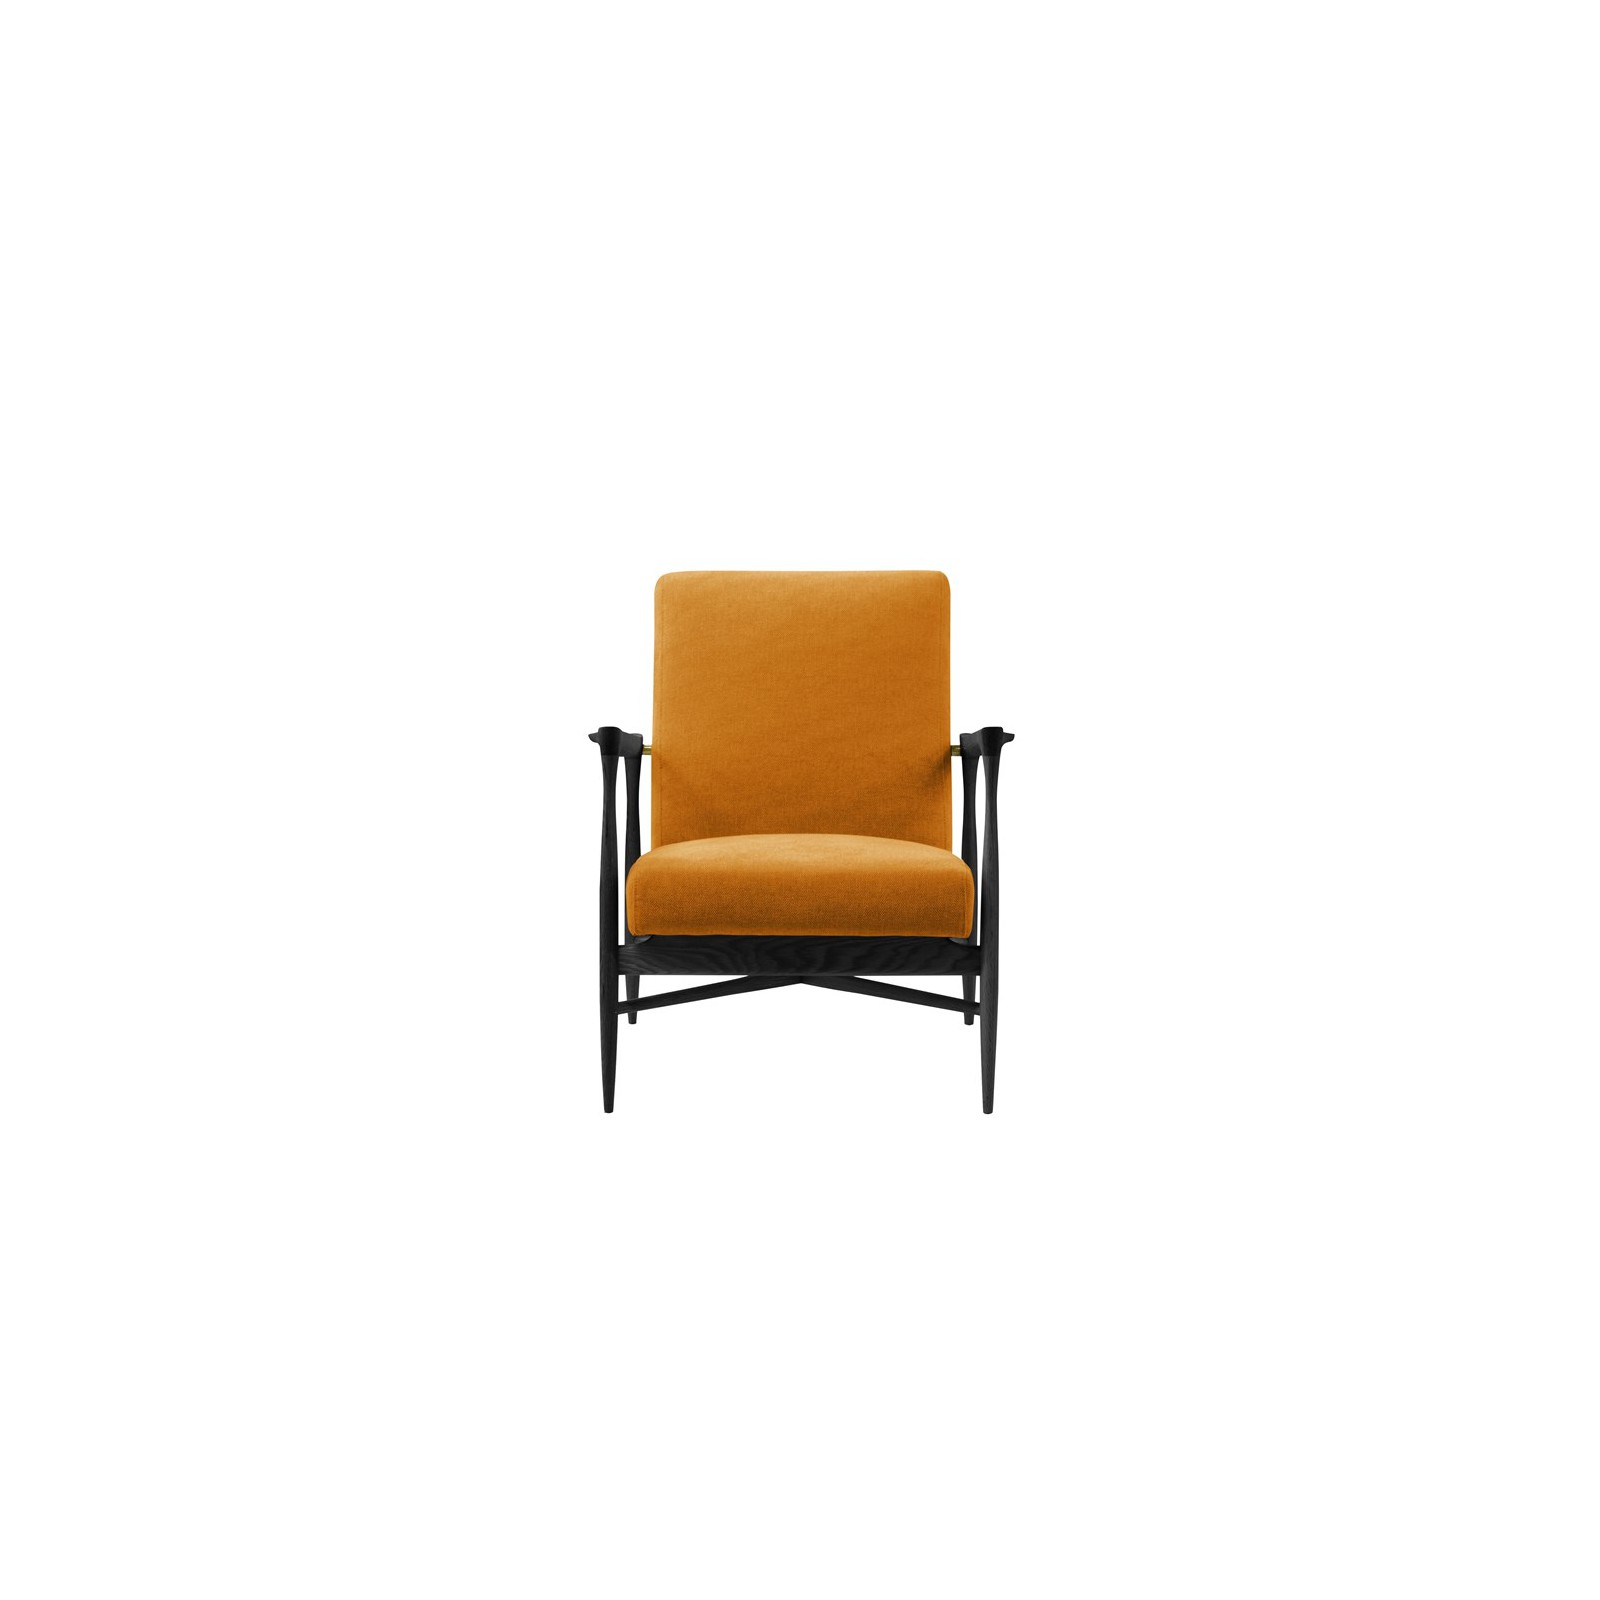 Fauteuil floating black ocre arne concept - Fauteuil floating ...